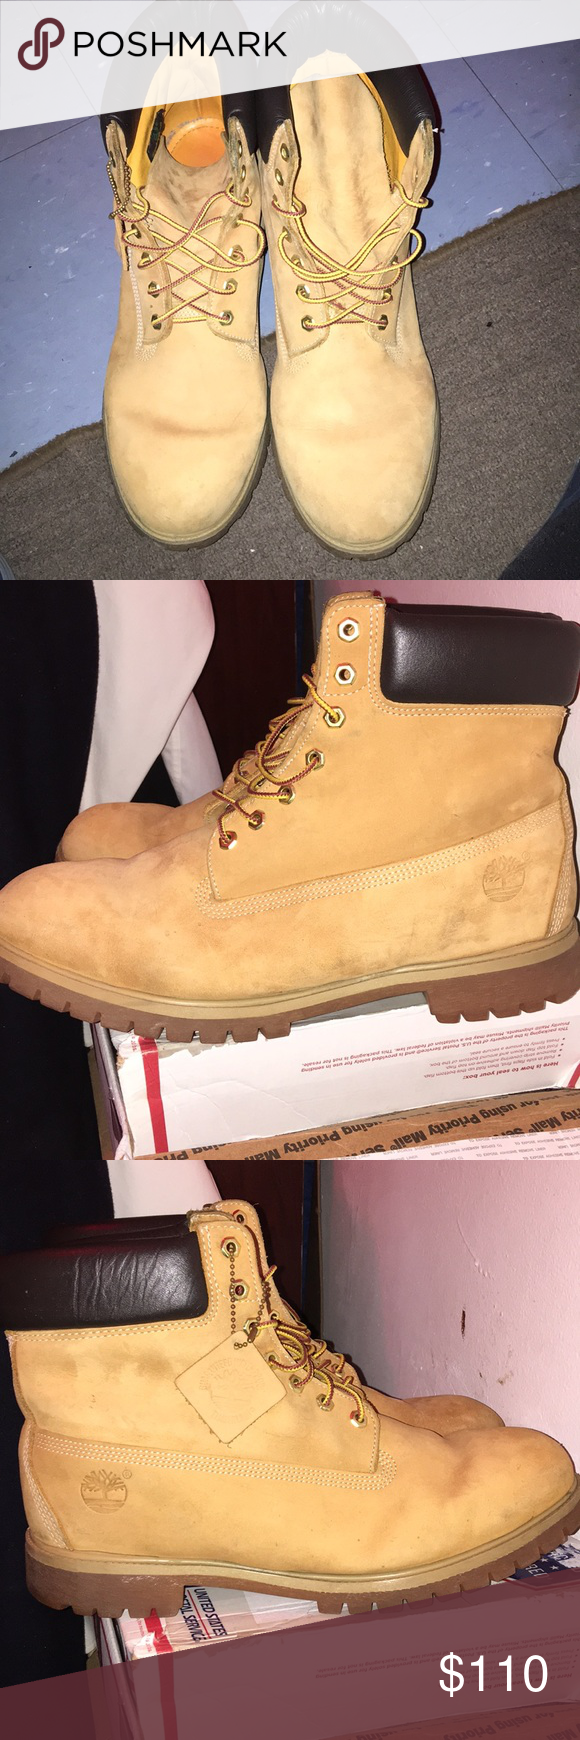 Teoría establecida lotería Illinois  Timberland Boots Waterproof (Size 14) Fresh pair of size 14 timberland boots  that was barely worn. Perfect o… | Timberland boots, Timberland waterproof  boots, Boots